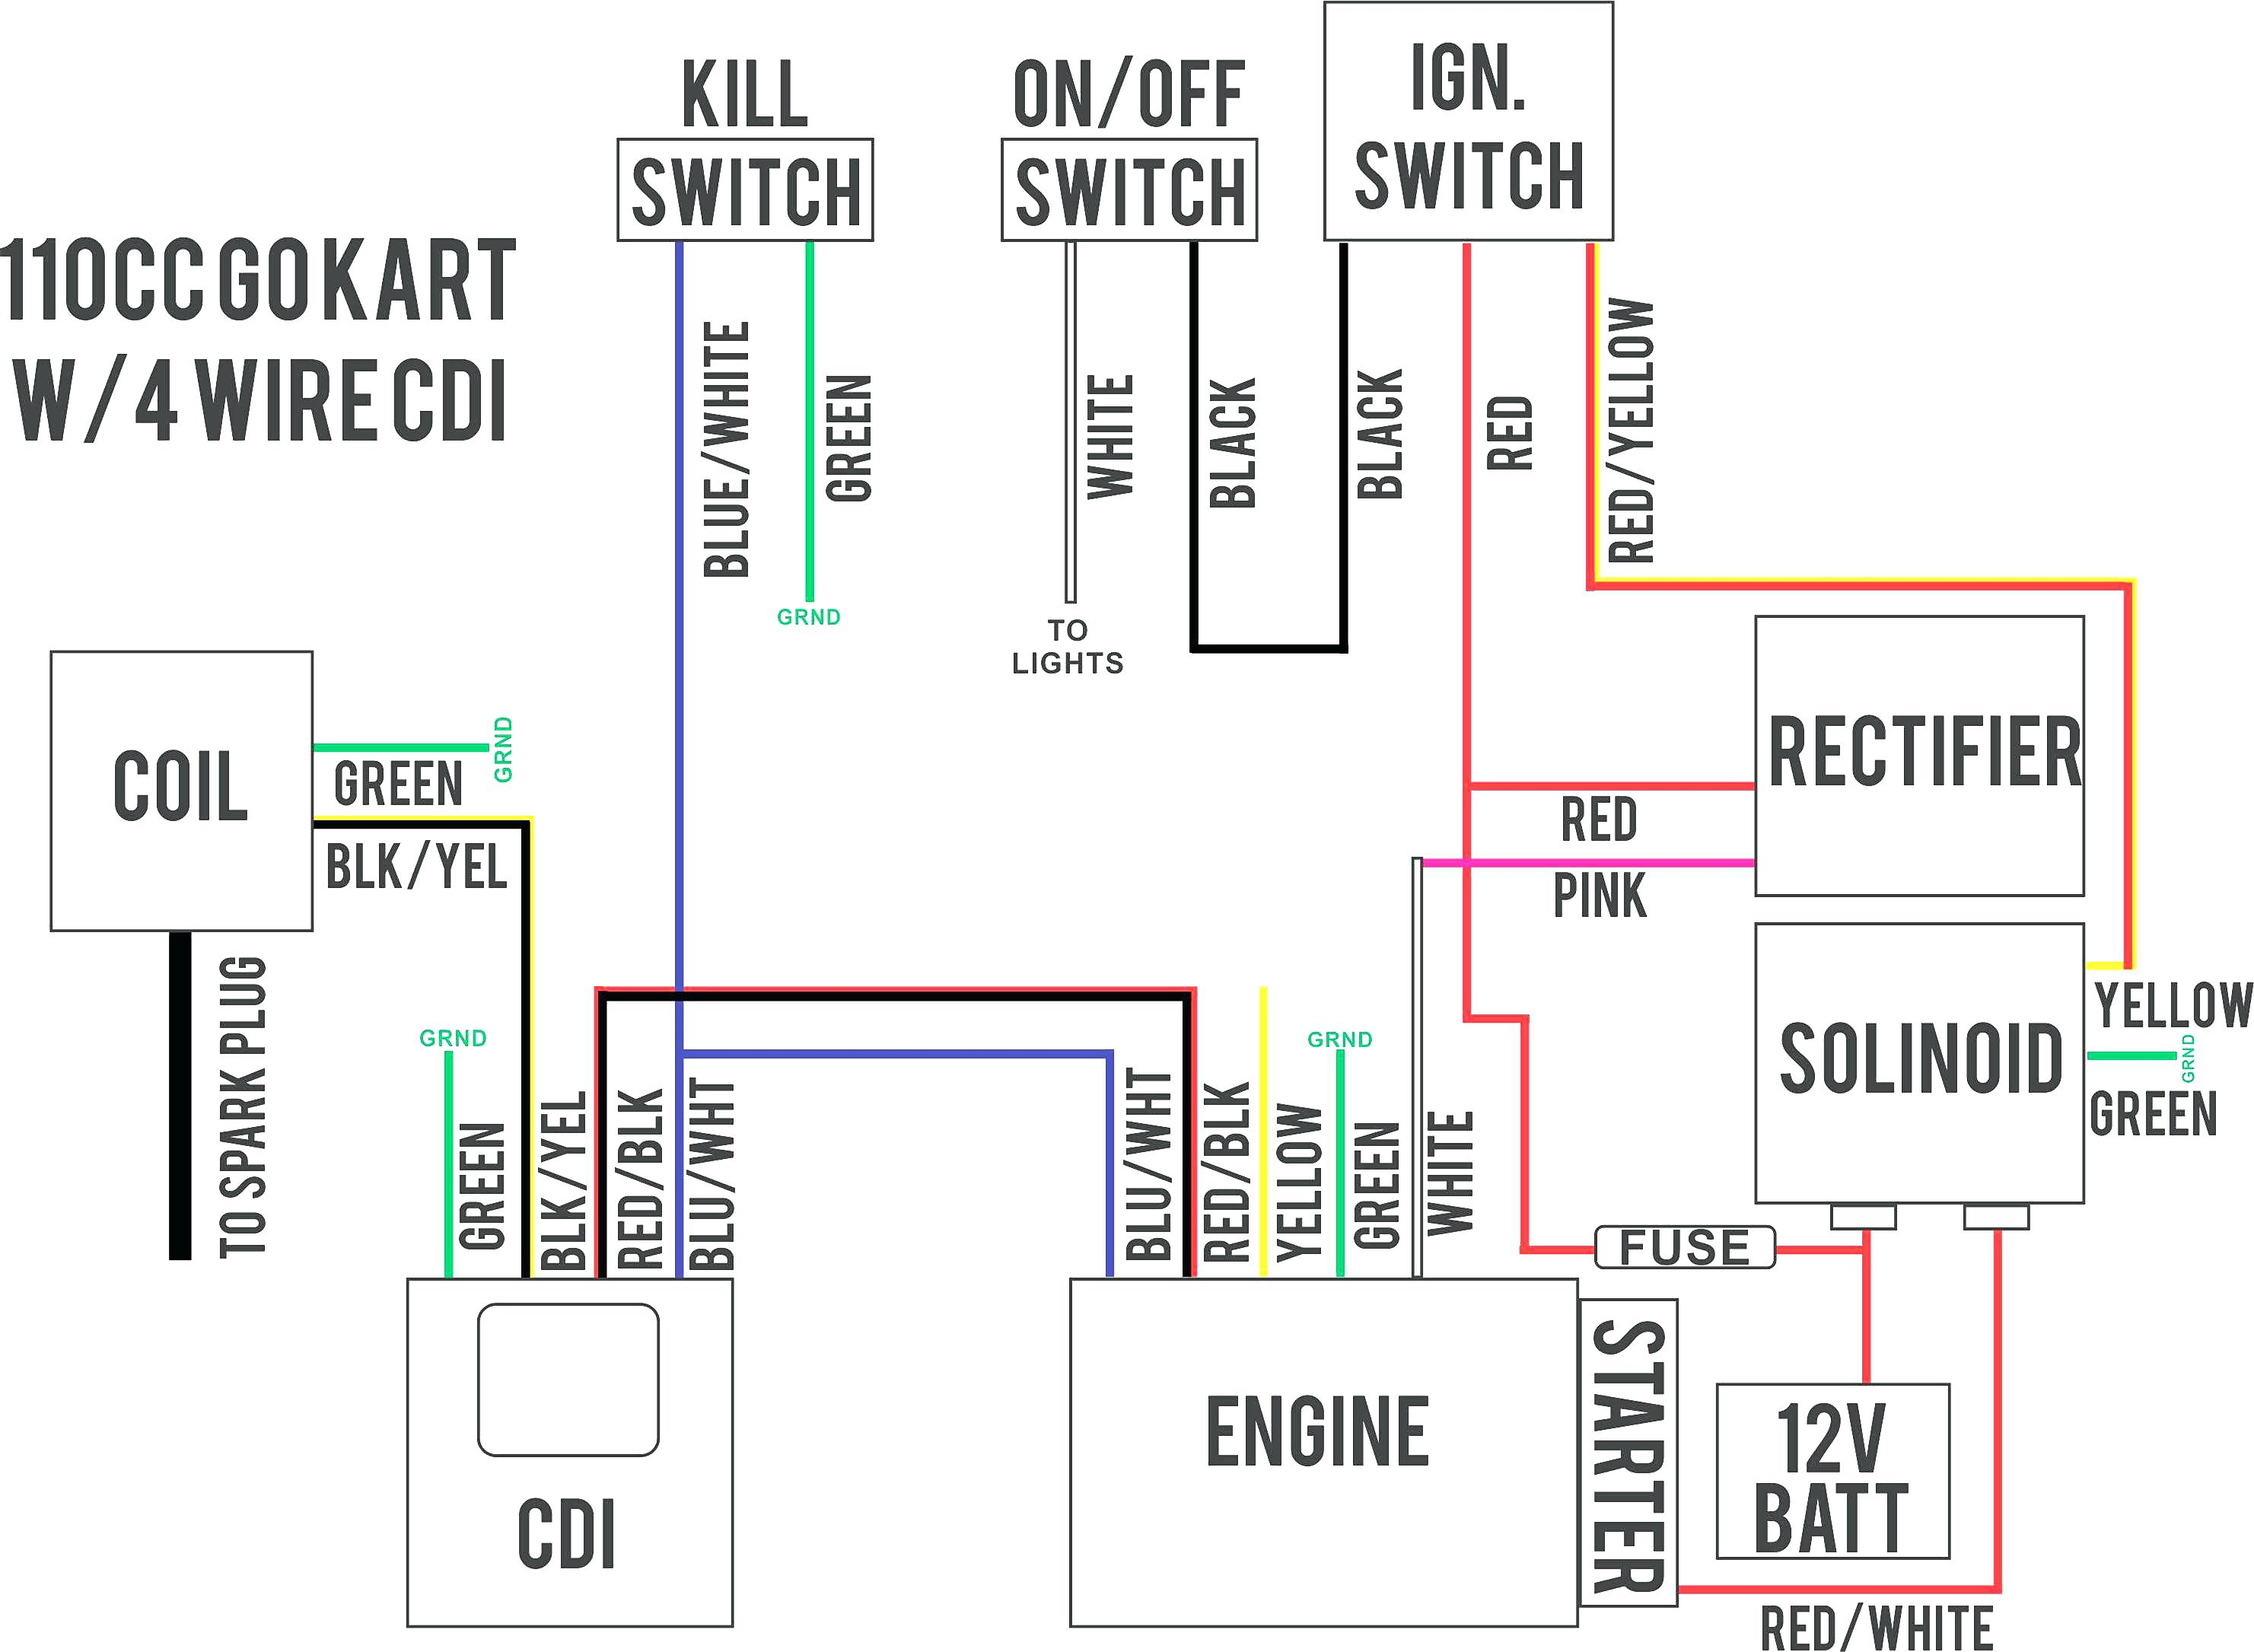 150Cc Scooter Wiring Diagram - Wiring Diagrams Hubs - Gy6 150Cc Wiring Diagram